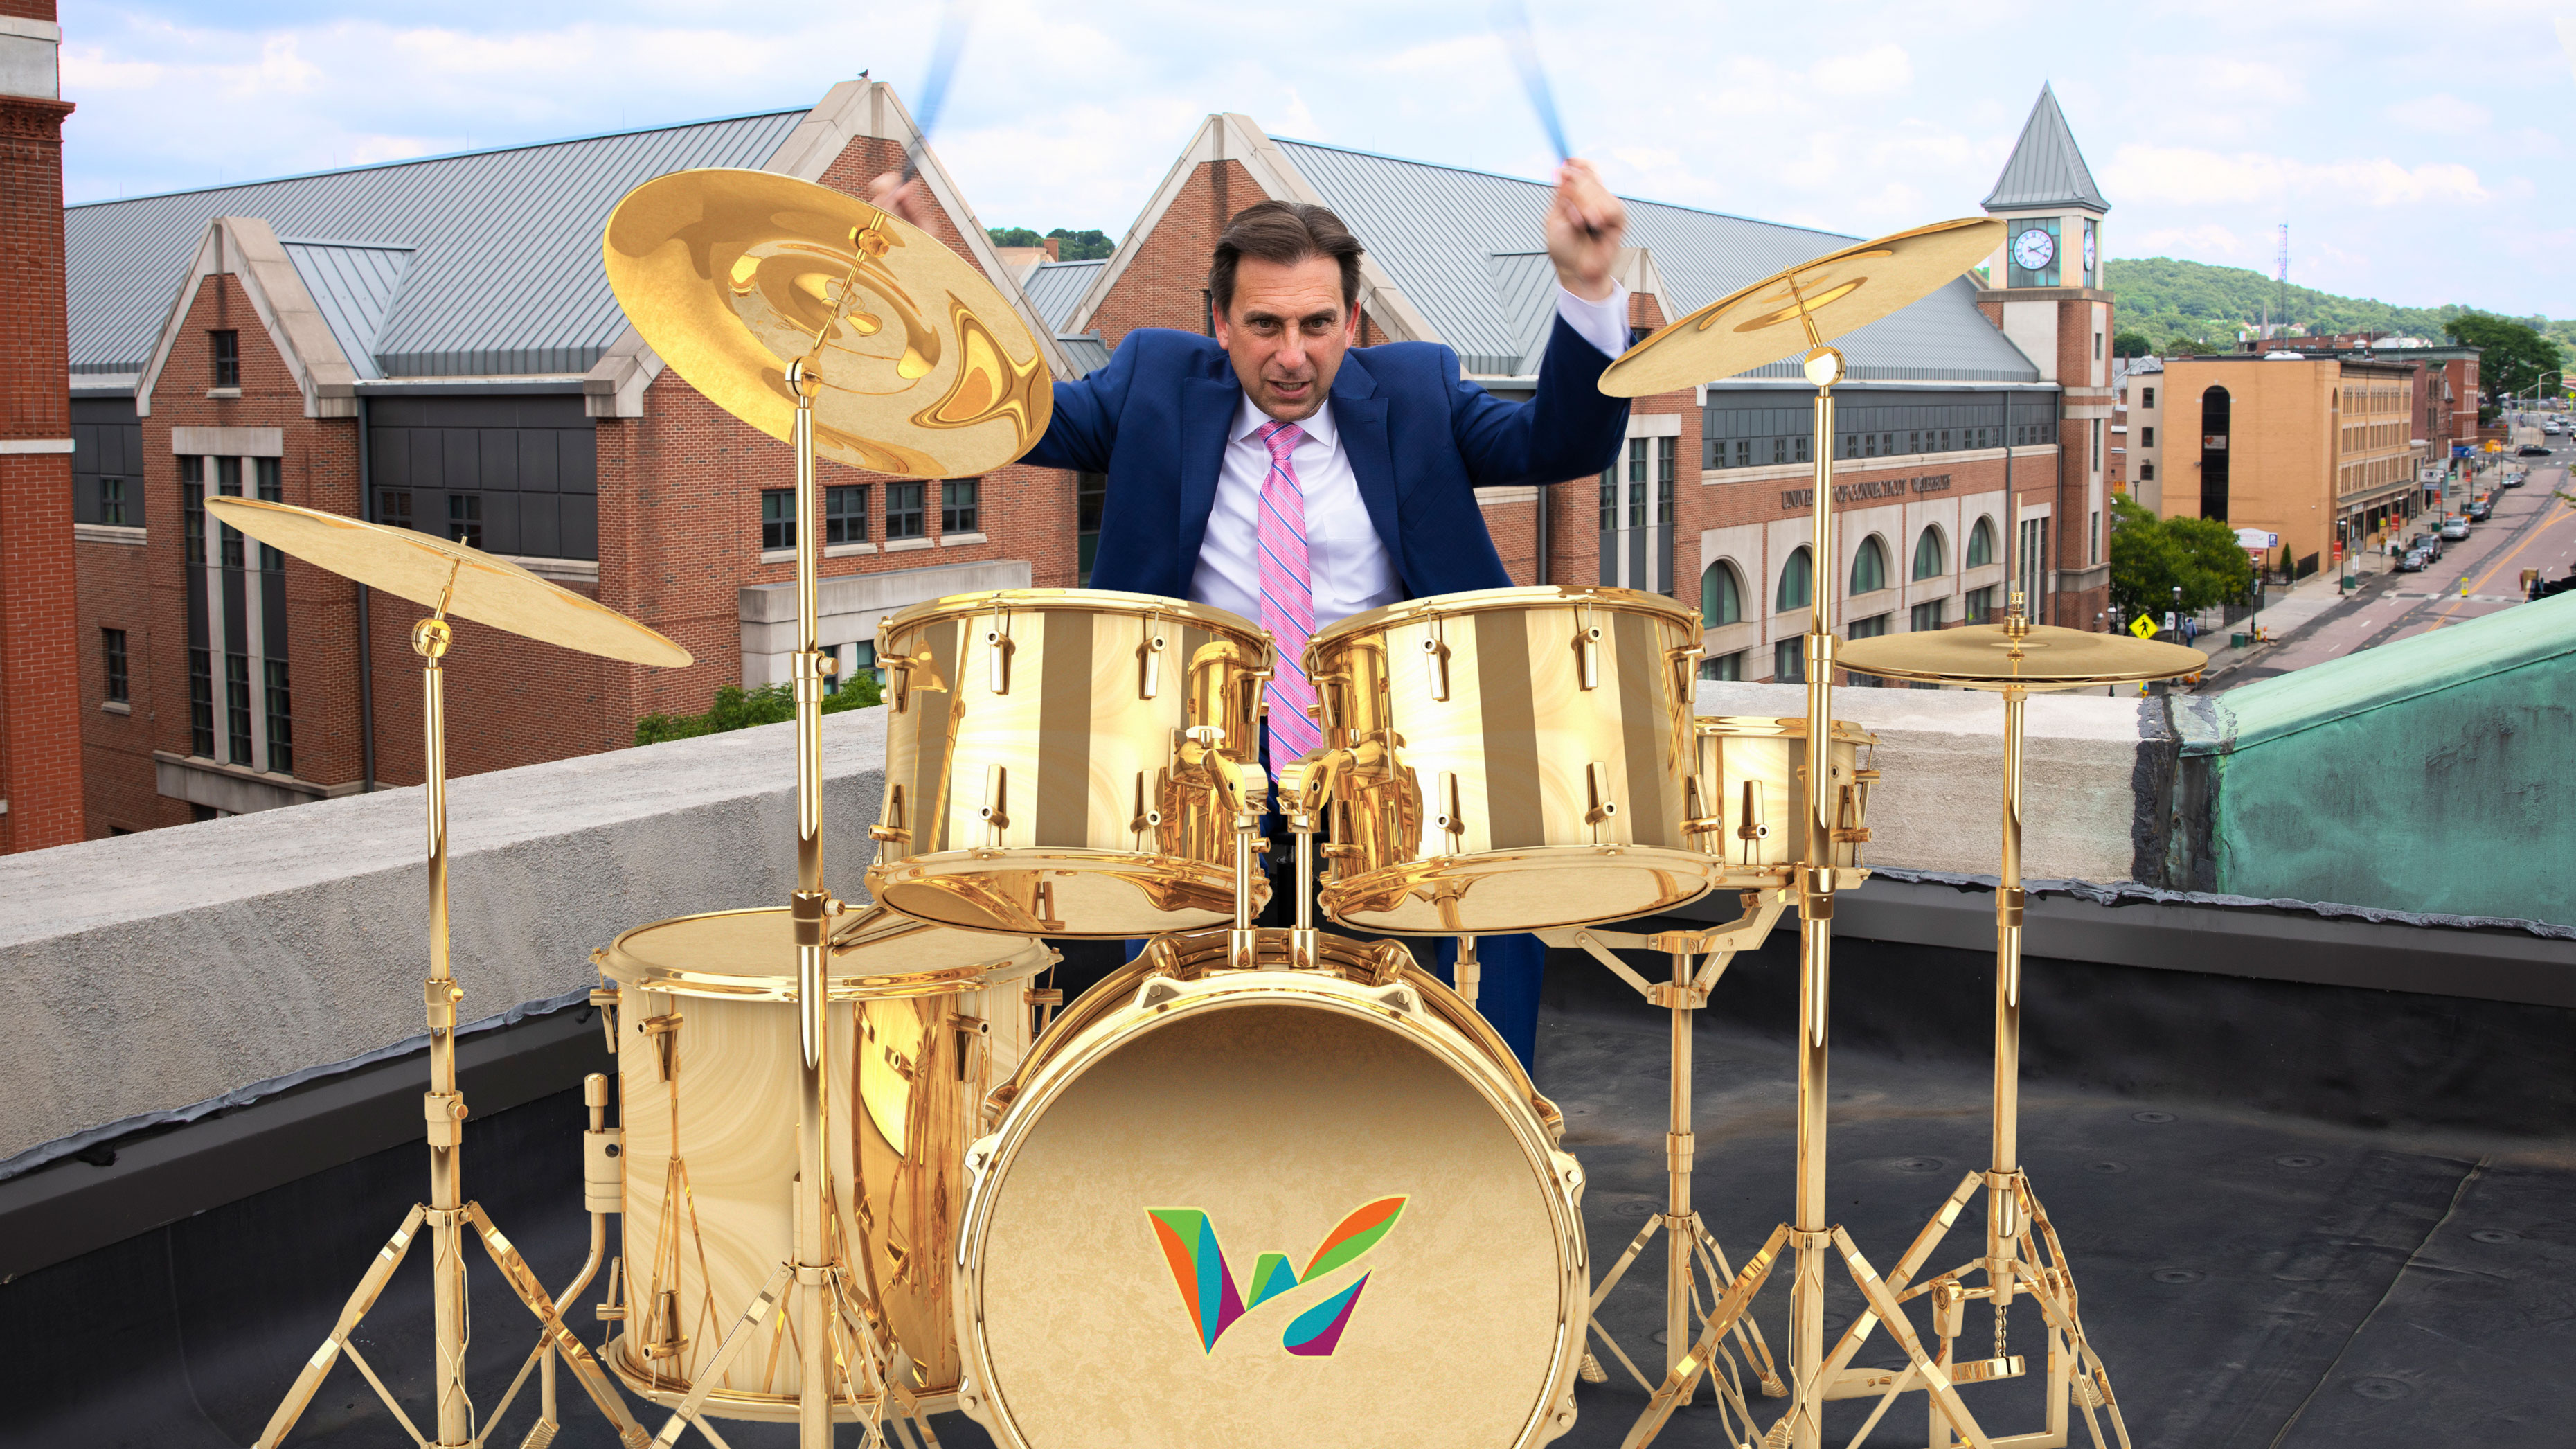 Joe Gramando playing drums on a rooftop in Waterbury CT, drumset showing the Waterbury logo